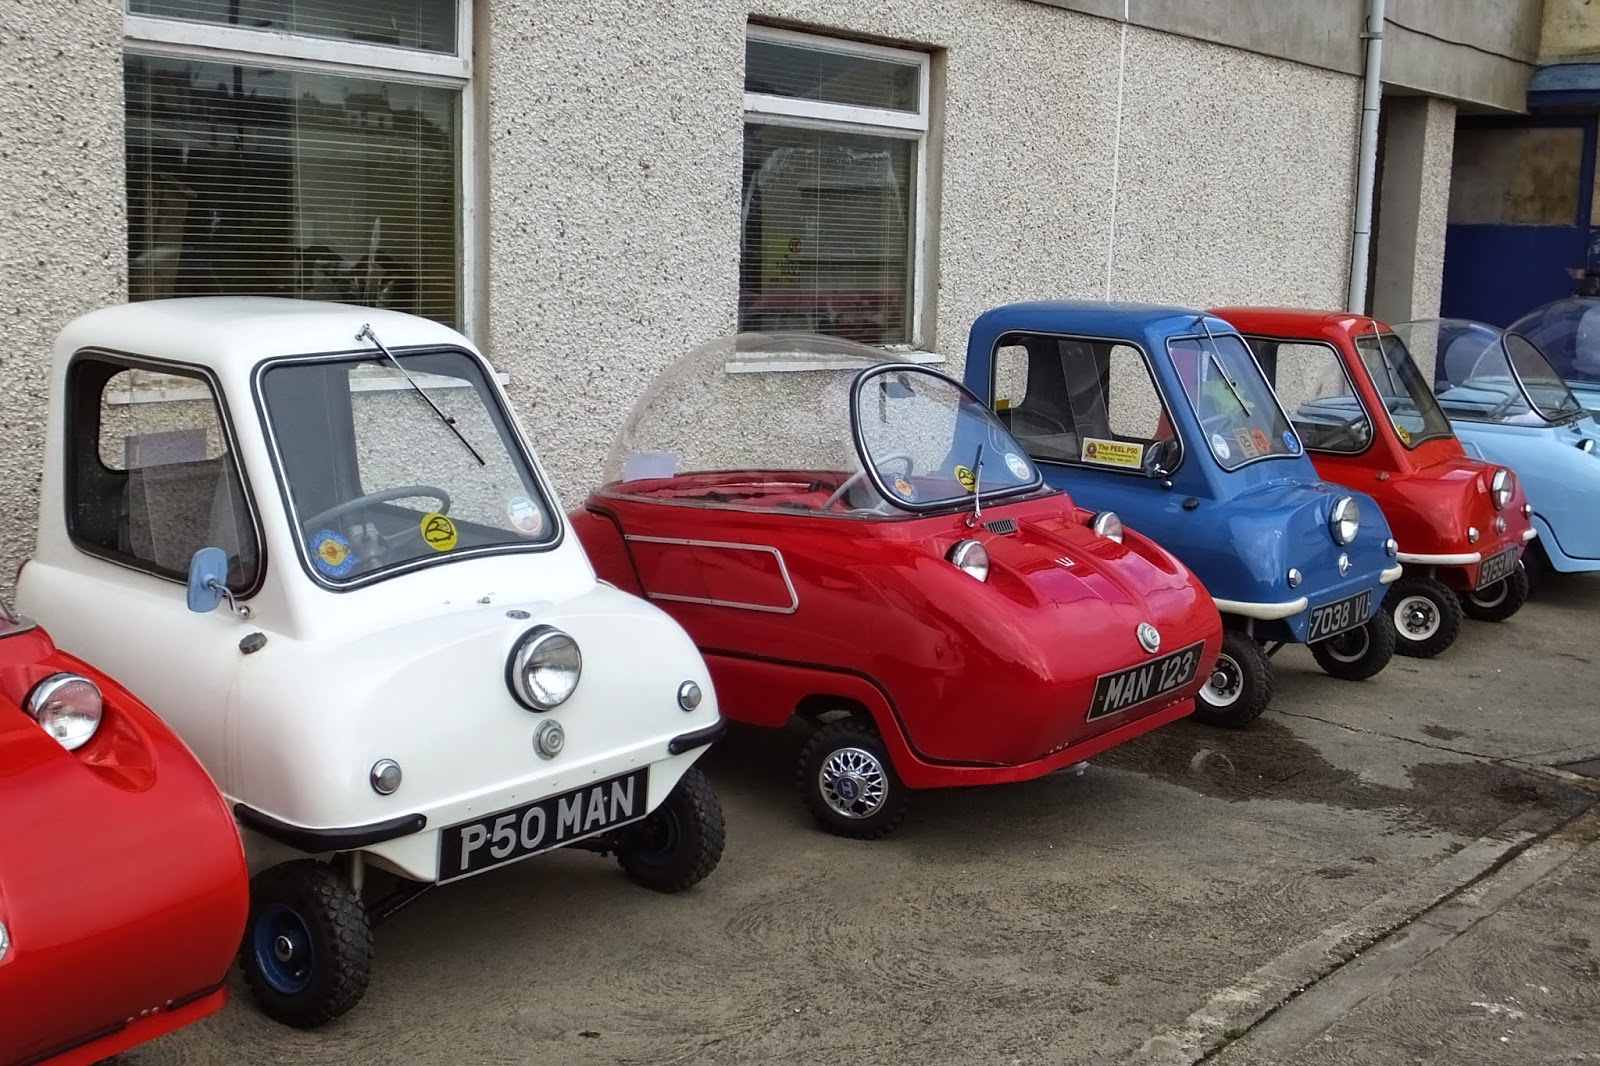 north american manx association blog the peel p50 celebrates 50th birthday. Black Bedroom Furniture Sets. Home Design Ideas